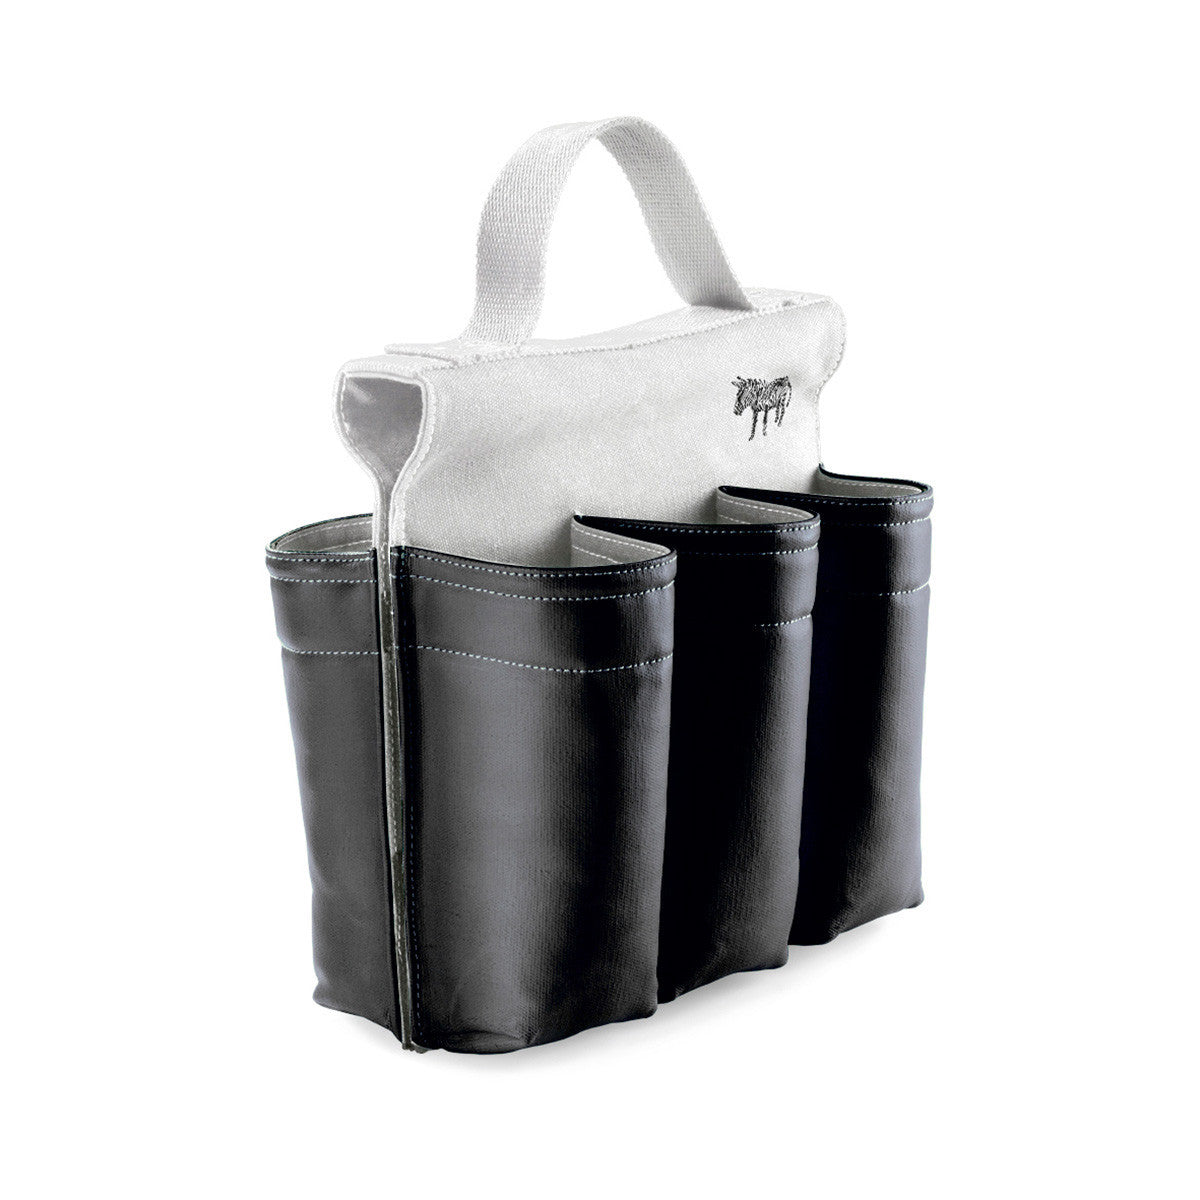 Donkey Products Bike Bag Six Pack B&W